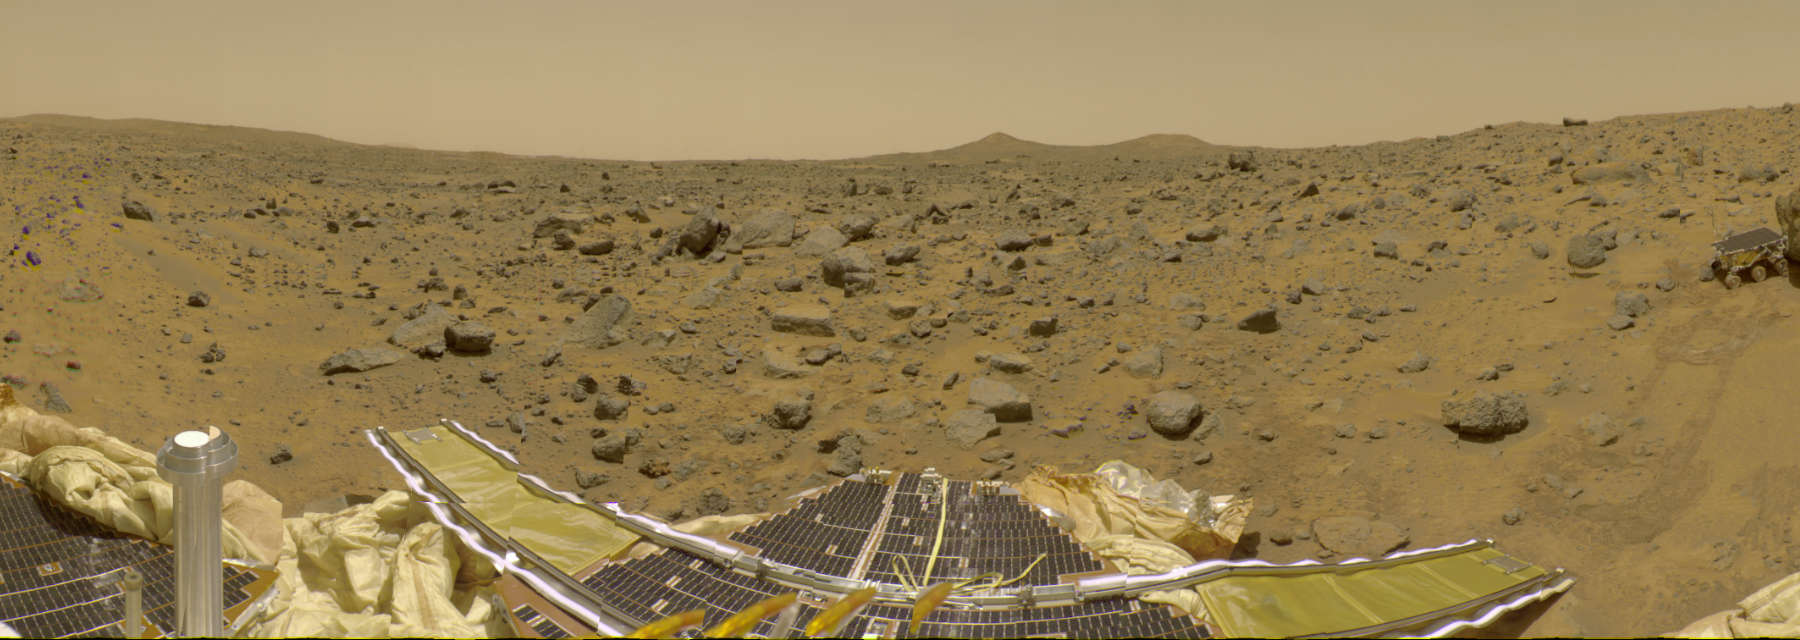 The Martian surface viewed from Pathfinder. Image: NASA